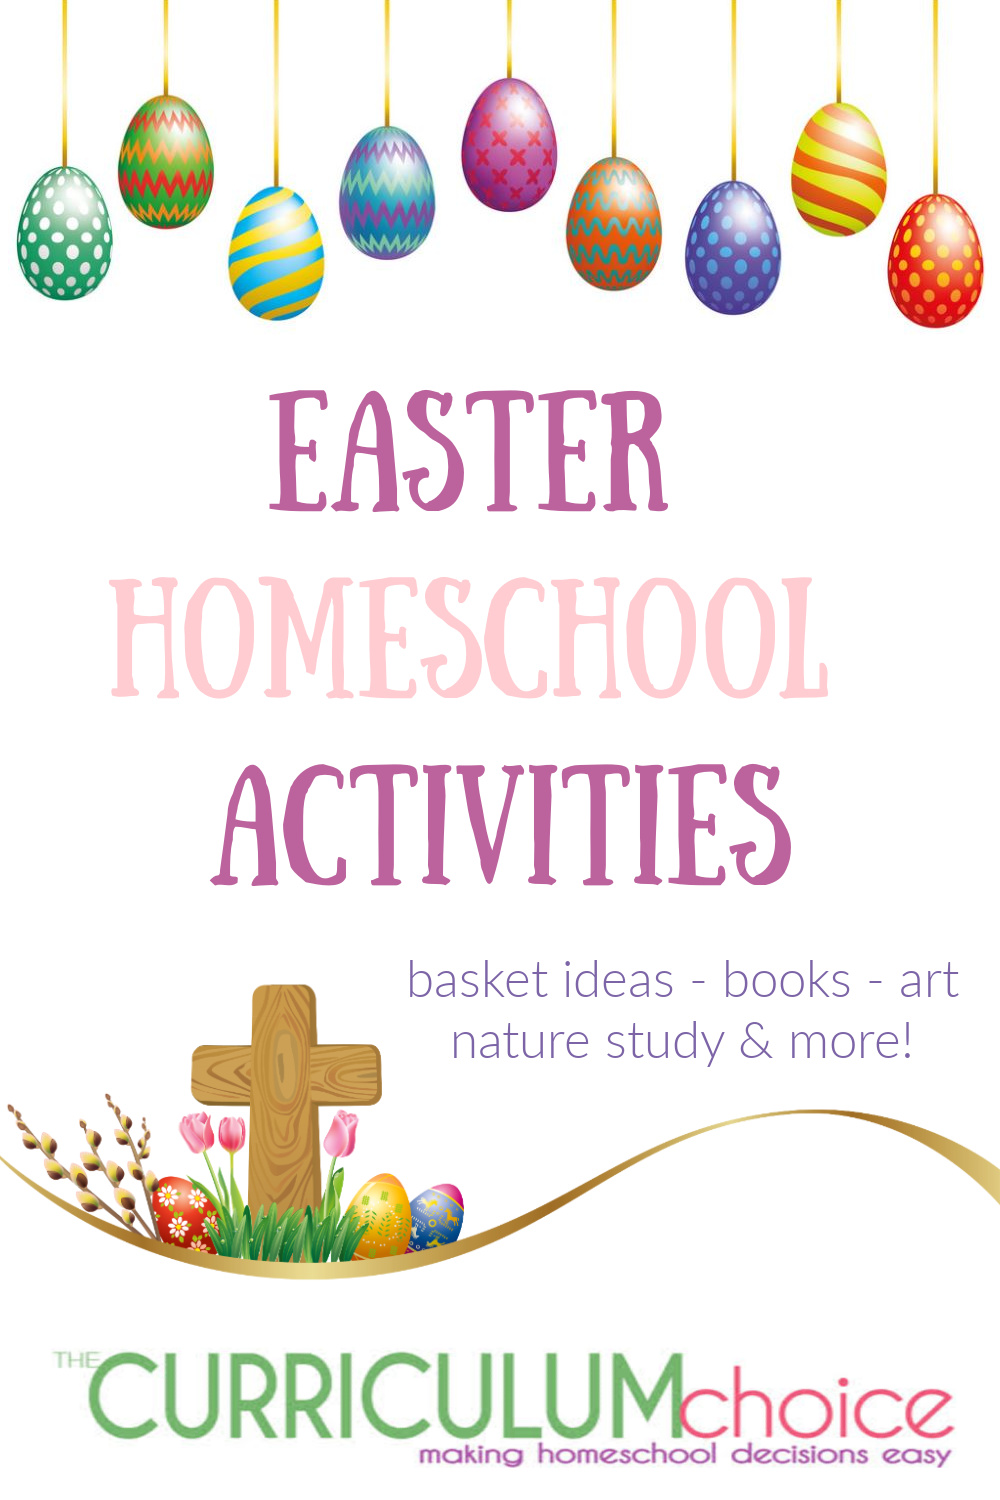 Easter Homeschool Activities from the authors at The Curriculum Choice including Easter Basket Ideas, books, art, nature study, and more! Celebrate the seasons with bunnies or the resurrection, or both!